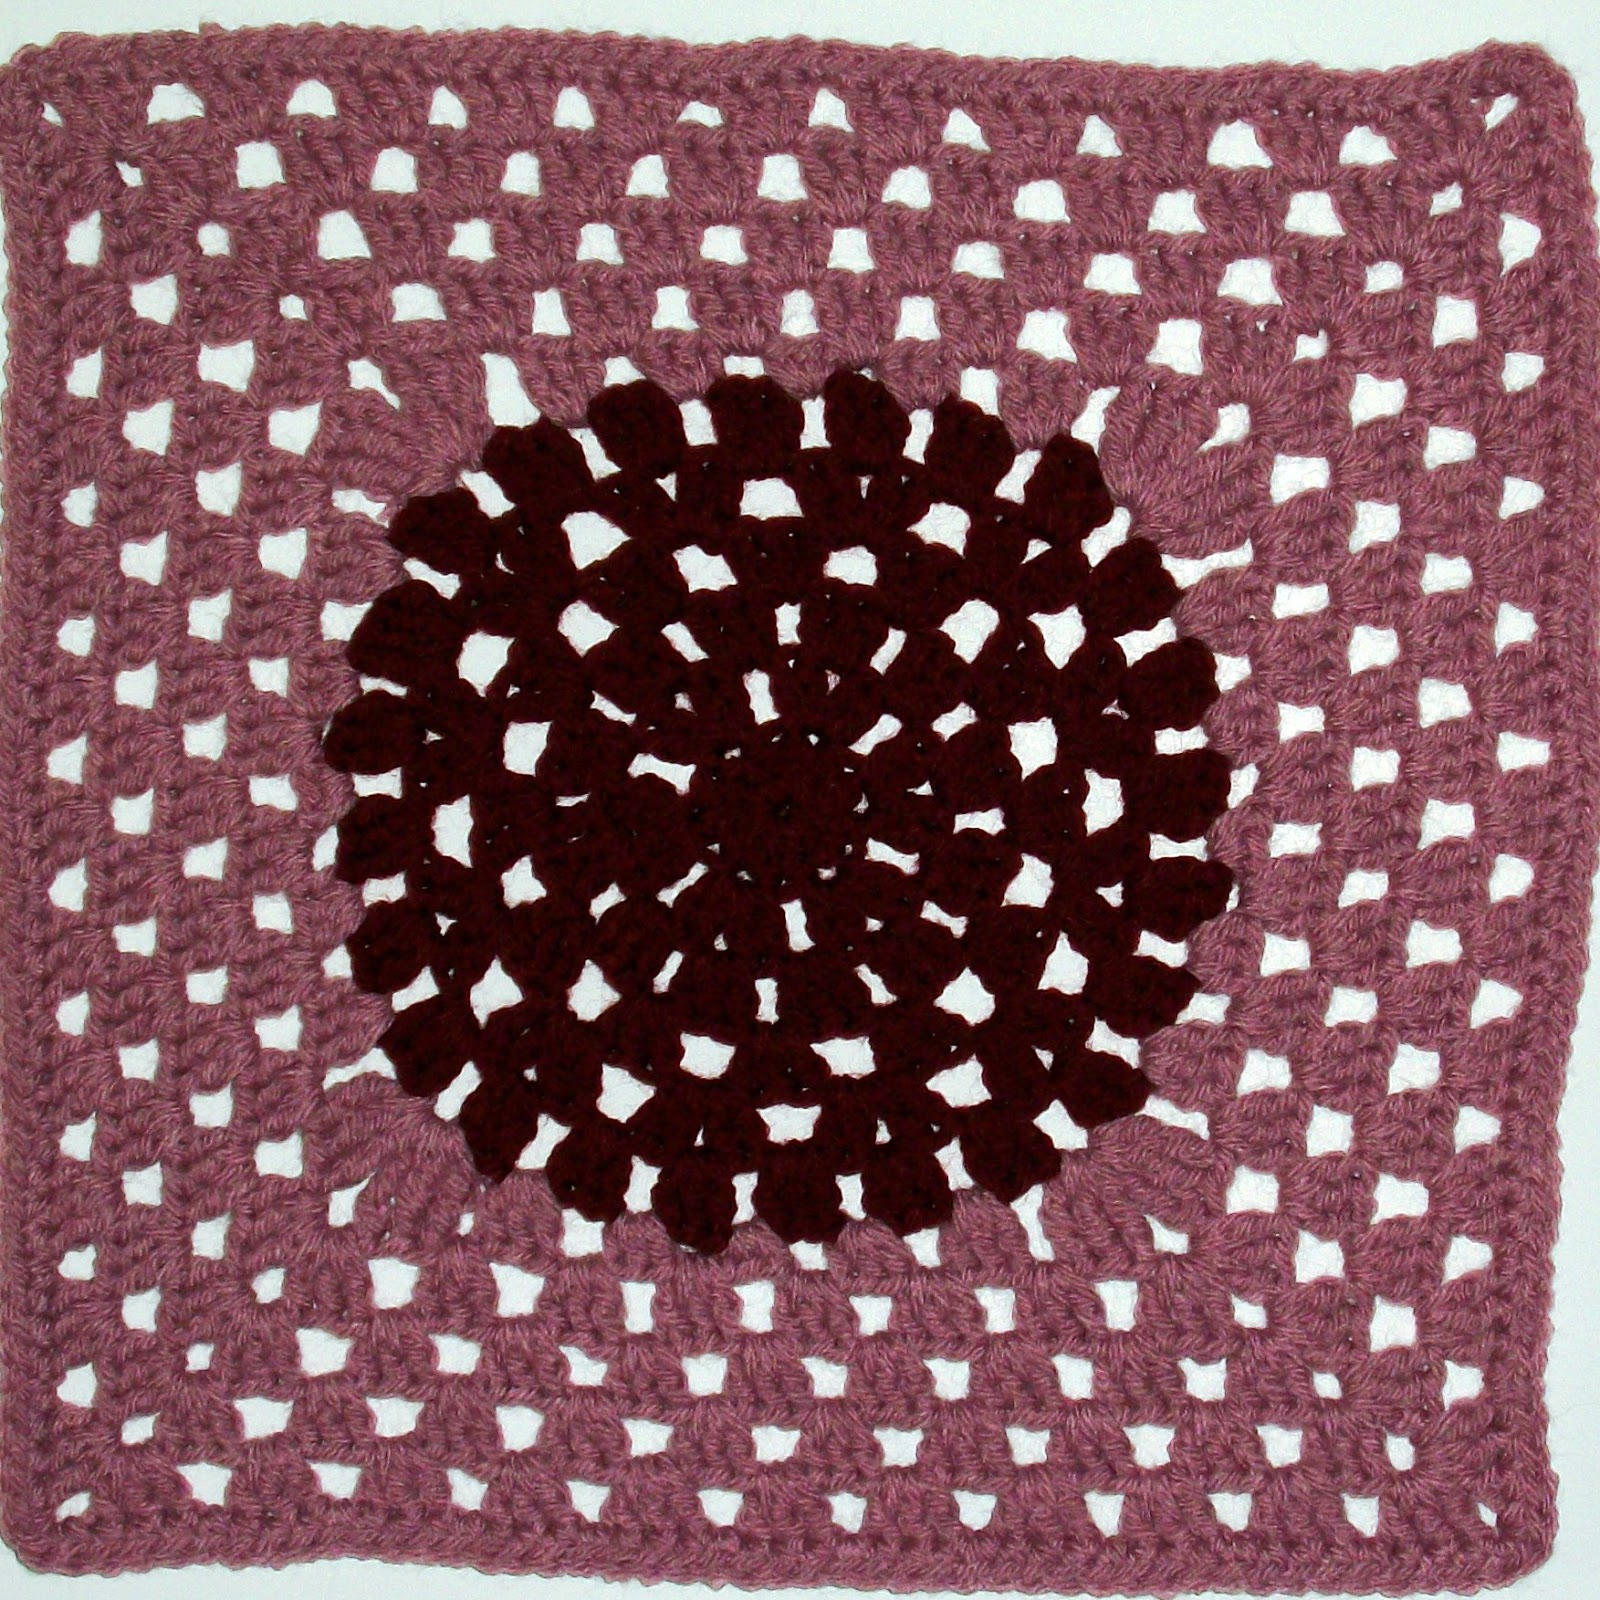 Crochet Stitches To Inches : MoCrochet - Melinda Miller Designs: Crazy Granny Square